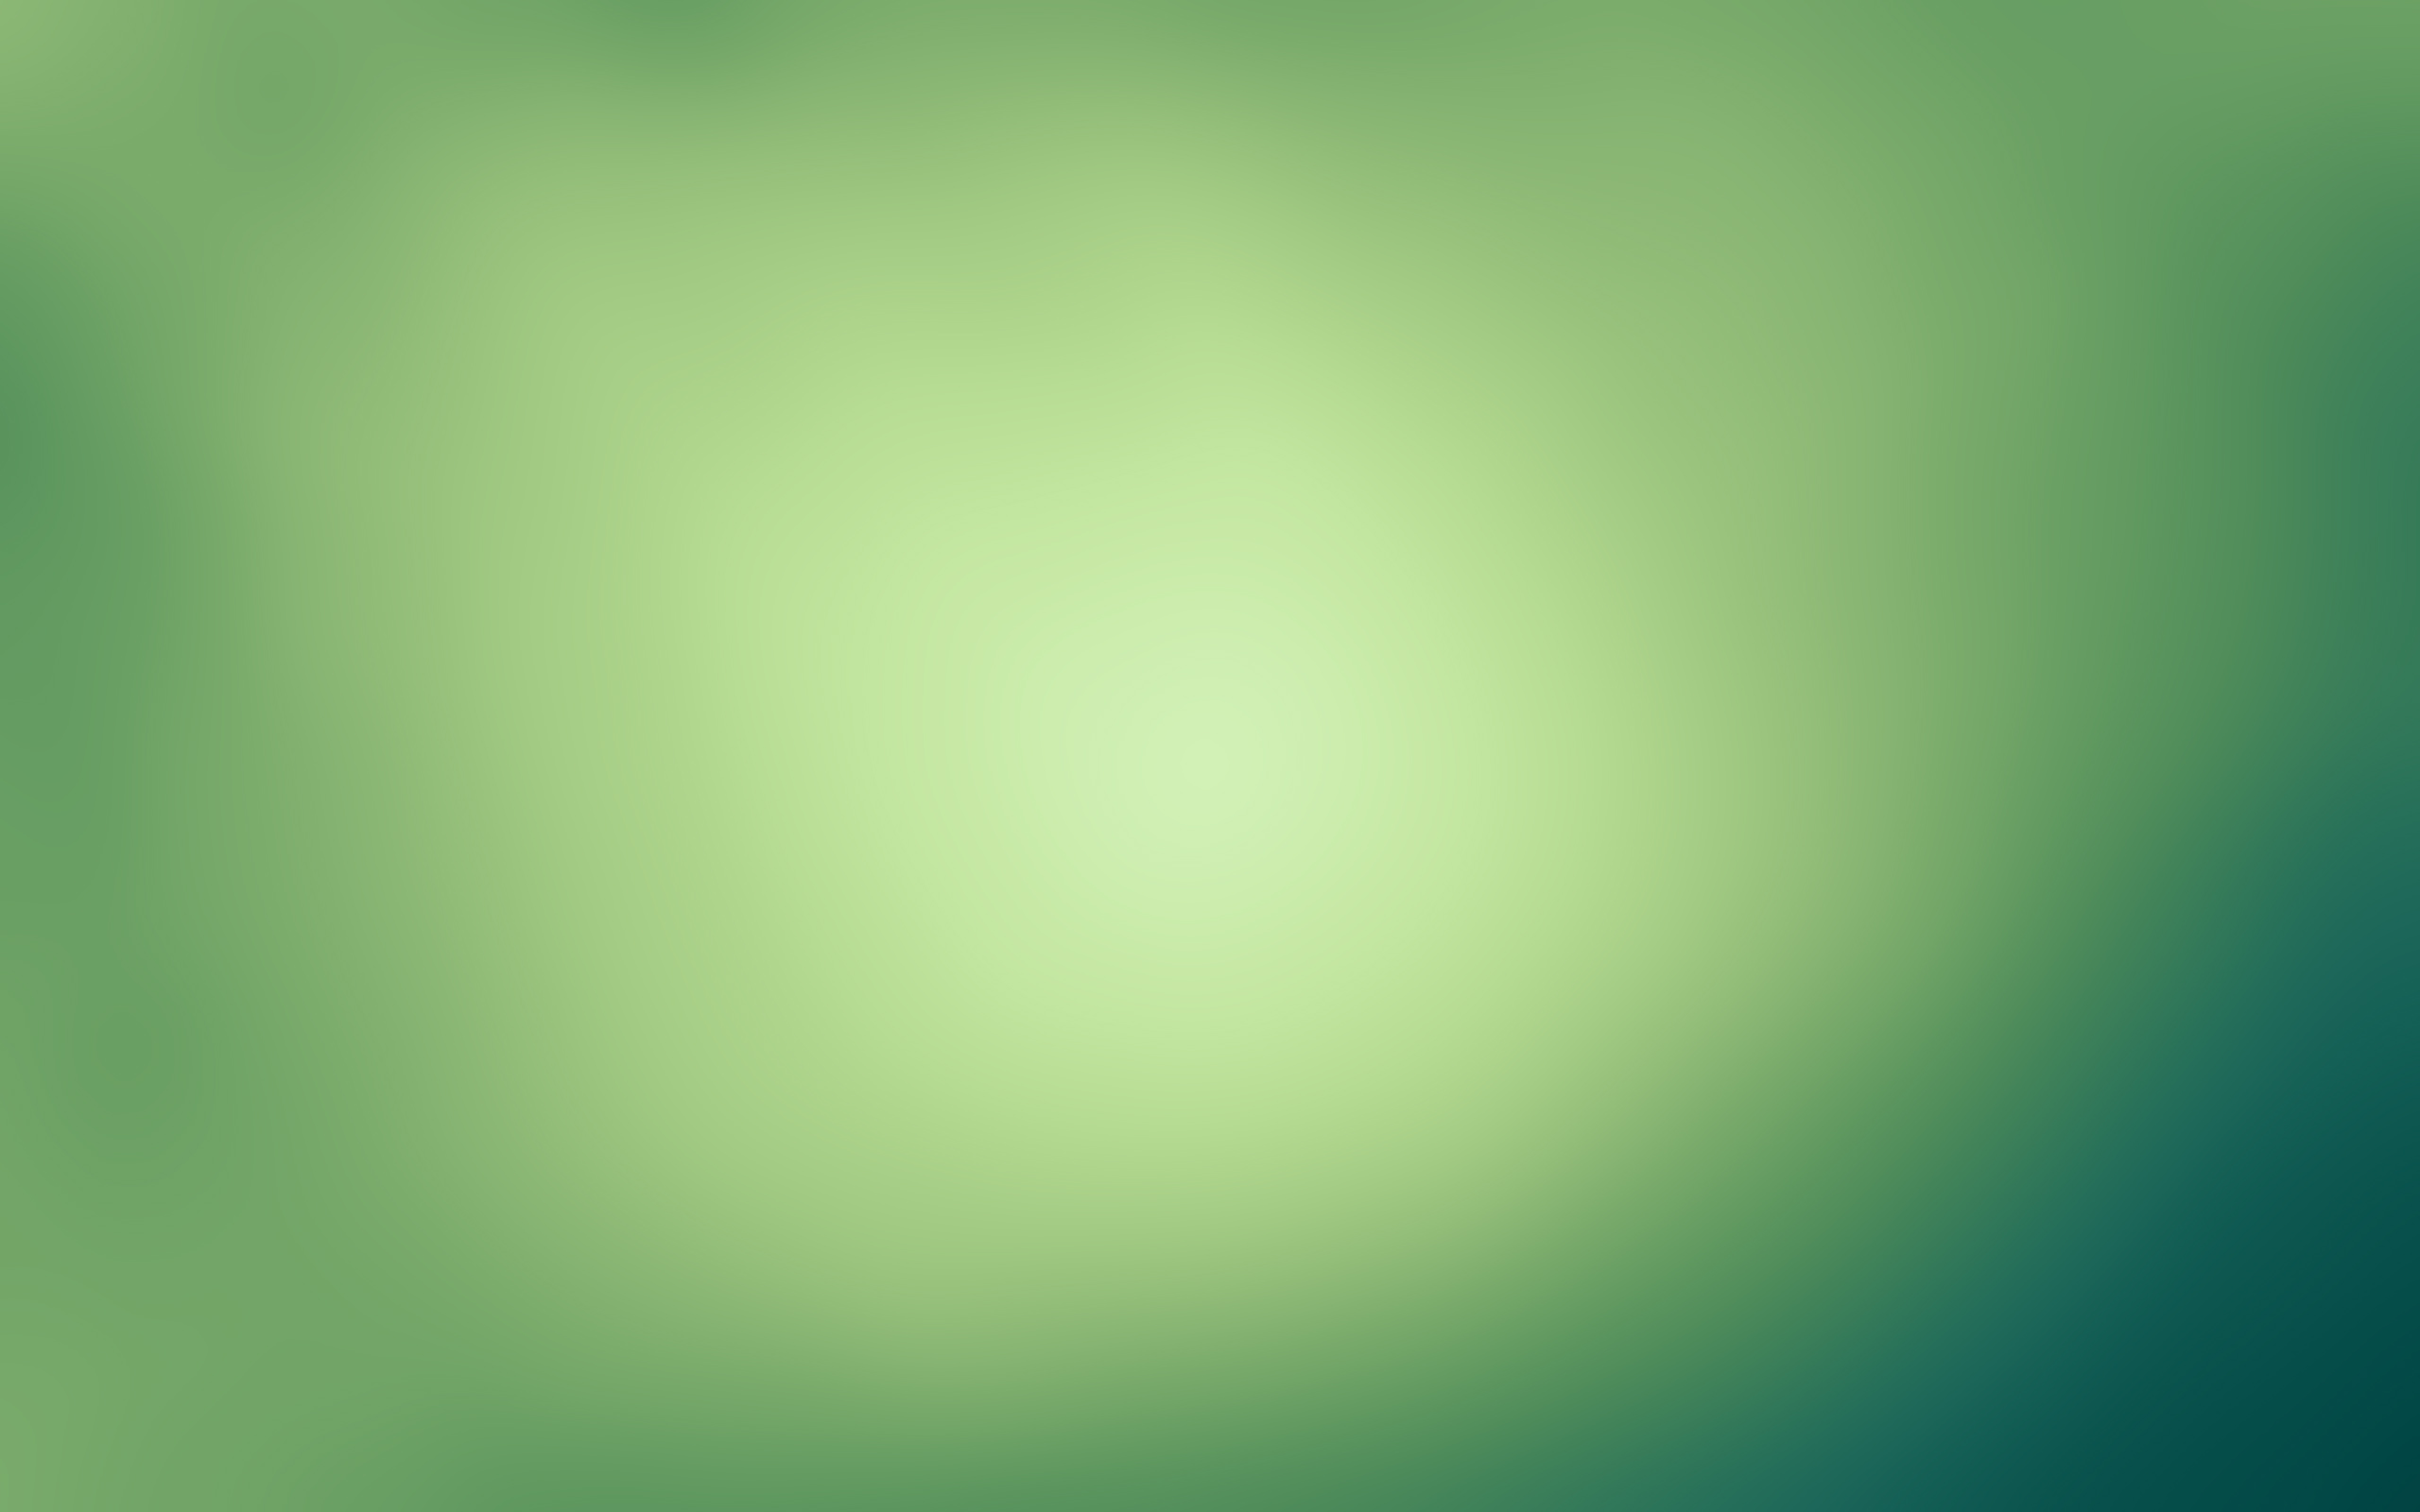 Free Solid Color Backgrounds.